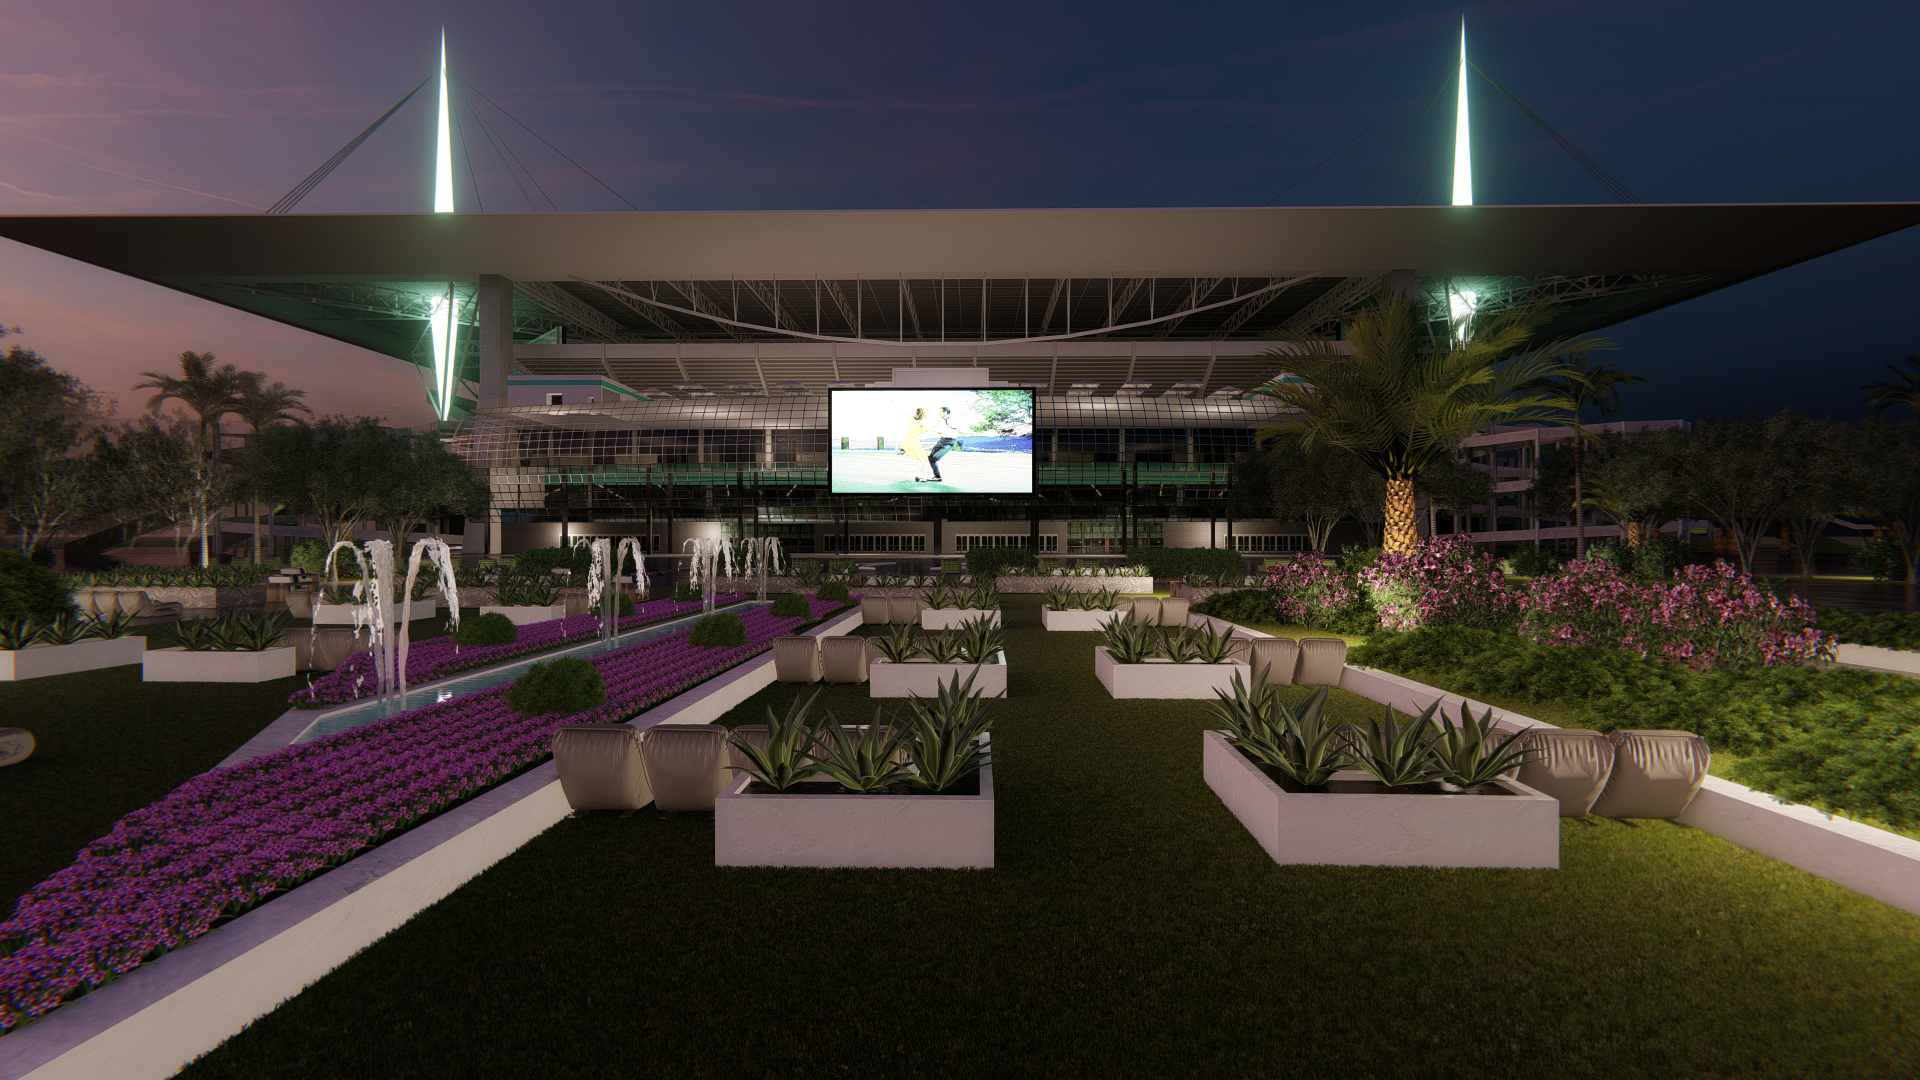 Miami Football Hard Rock Stadium Outdoor Theater Garden